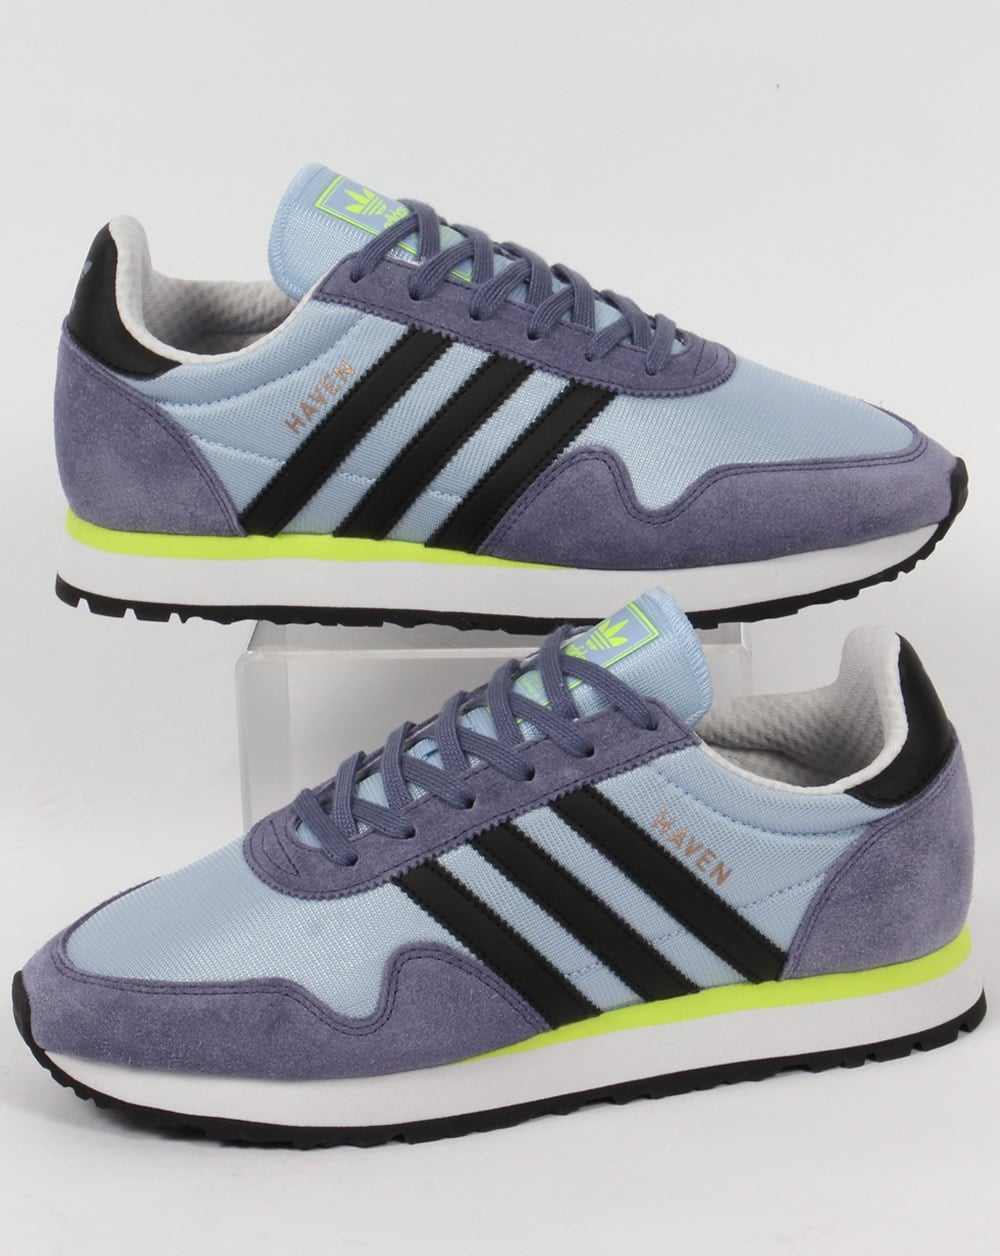 6d4206ab6a0 adidas Trainers Adidas Haven Trainers Soft Blue Black